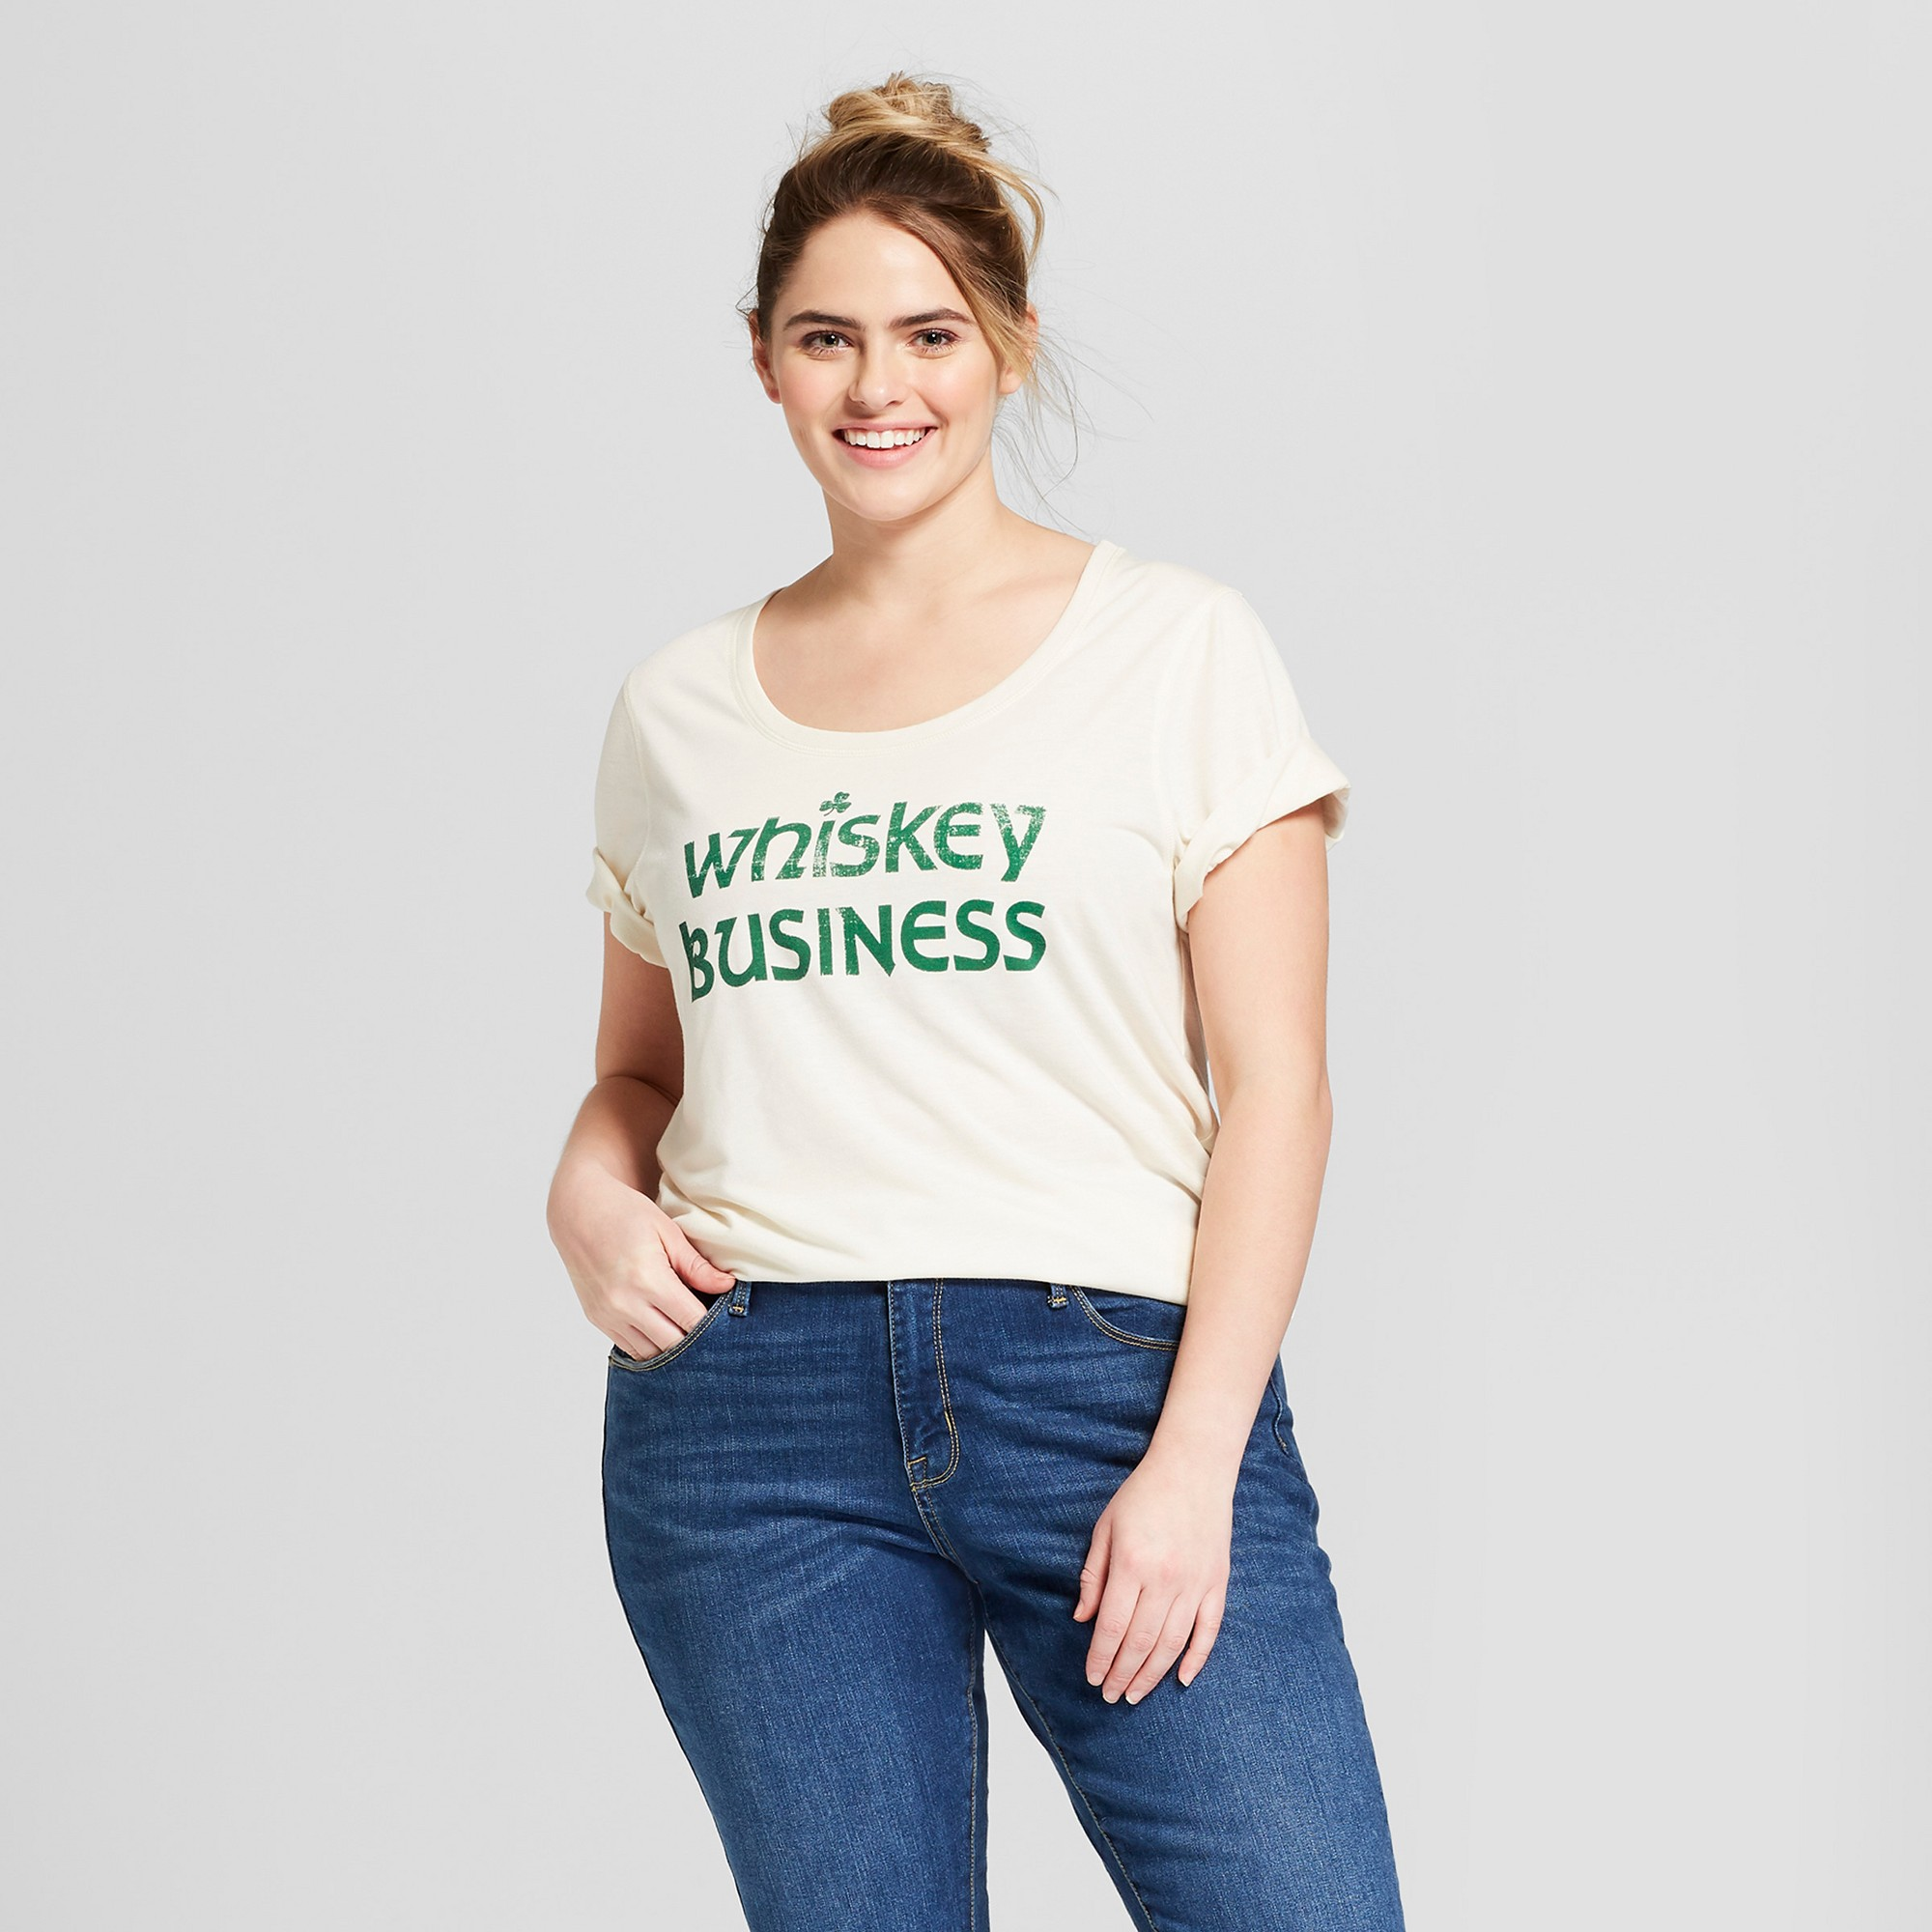 ca376706f Women's Plus Size St. Patrick's Day Whiskey Business Scoop Neck Short  Sleeve Graphic T-Shirt - Grayson Threads - White 2X, Beige